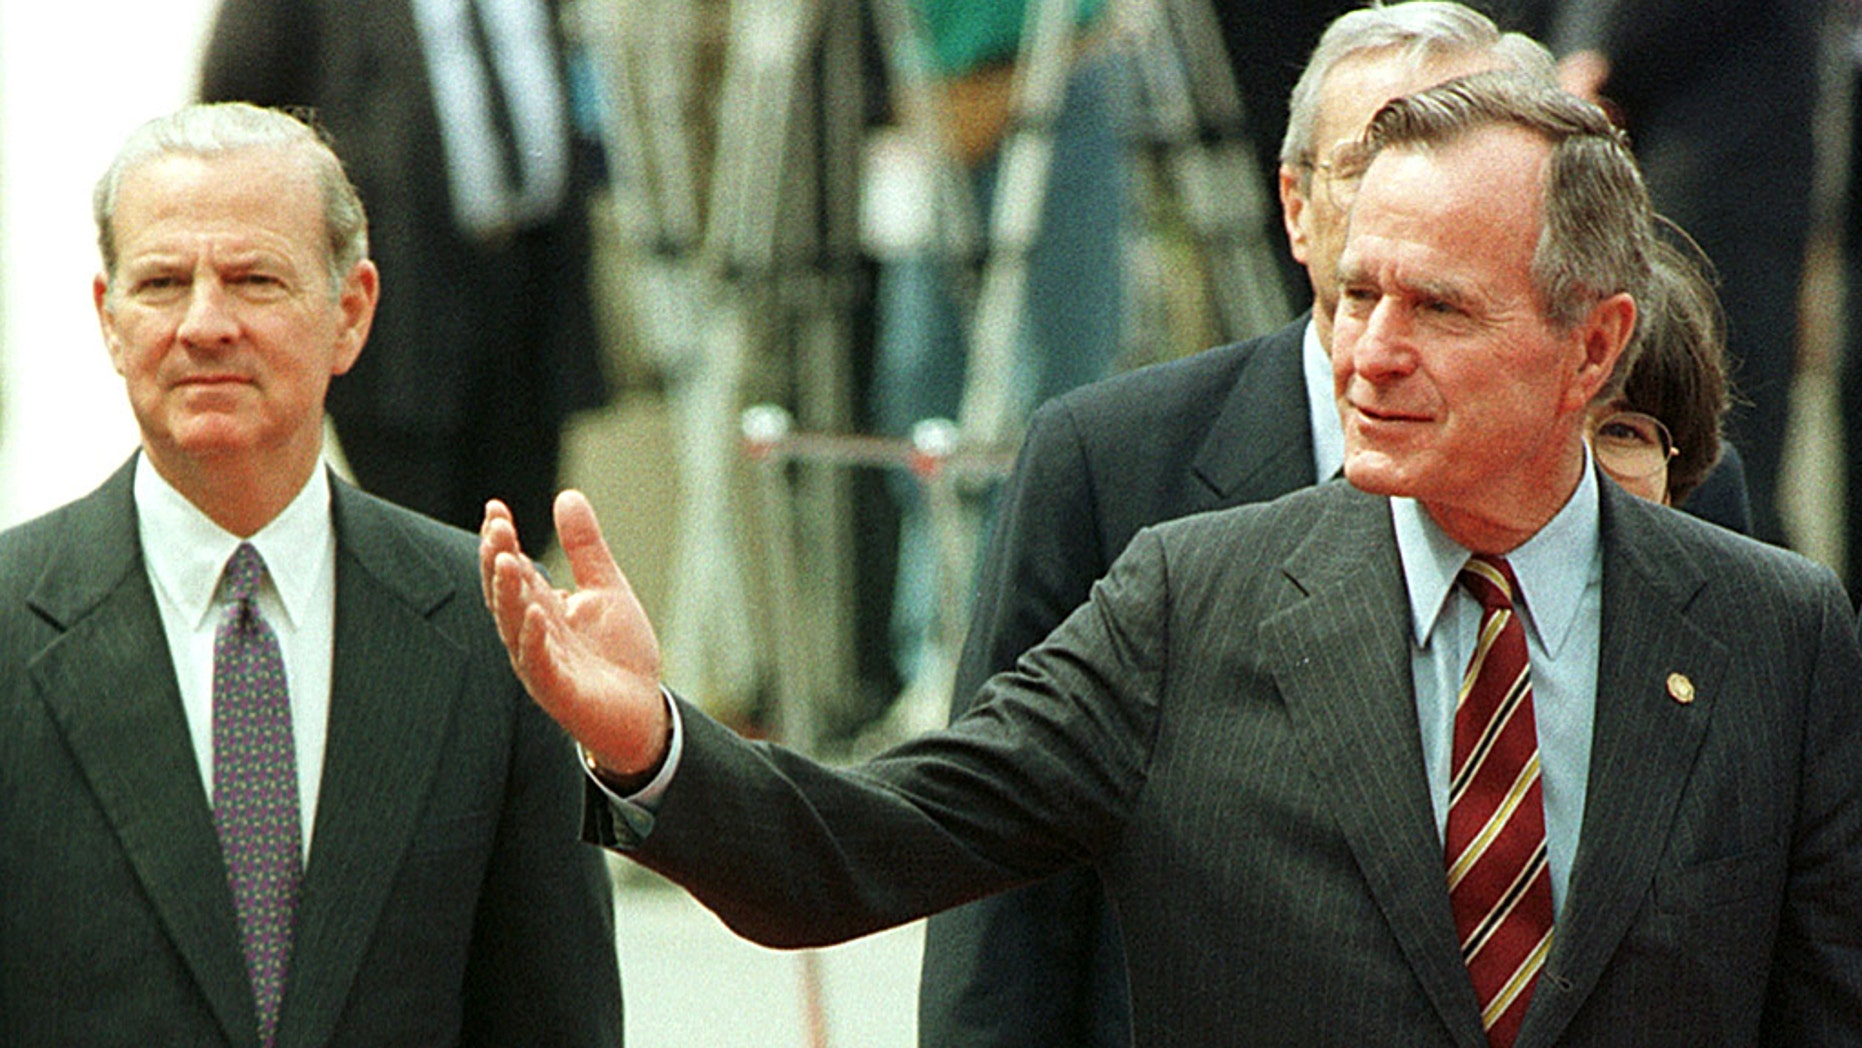 Former U.S. President George H.W. Bush (R) with former U.S. Secretary of State James Baker during a welcome ceremony for the G-7 summit in Munich, June 1992.